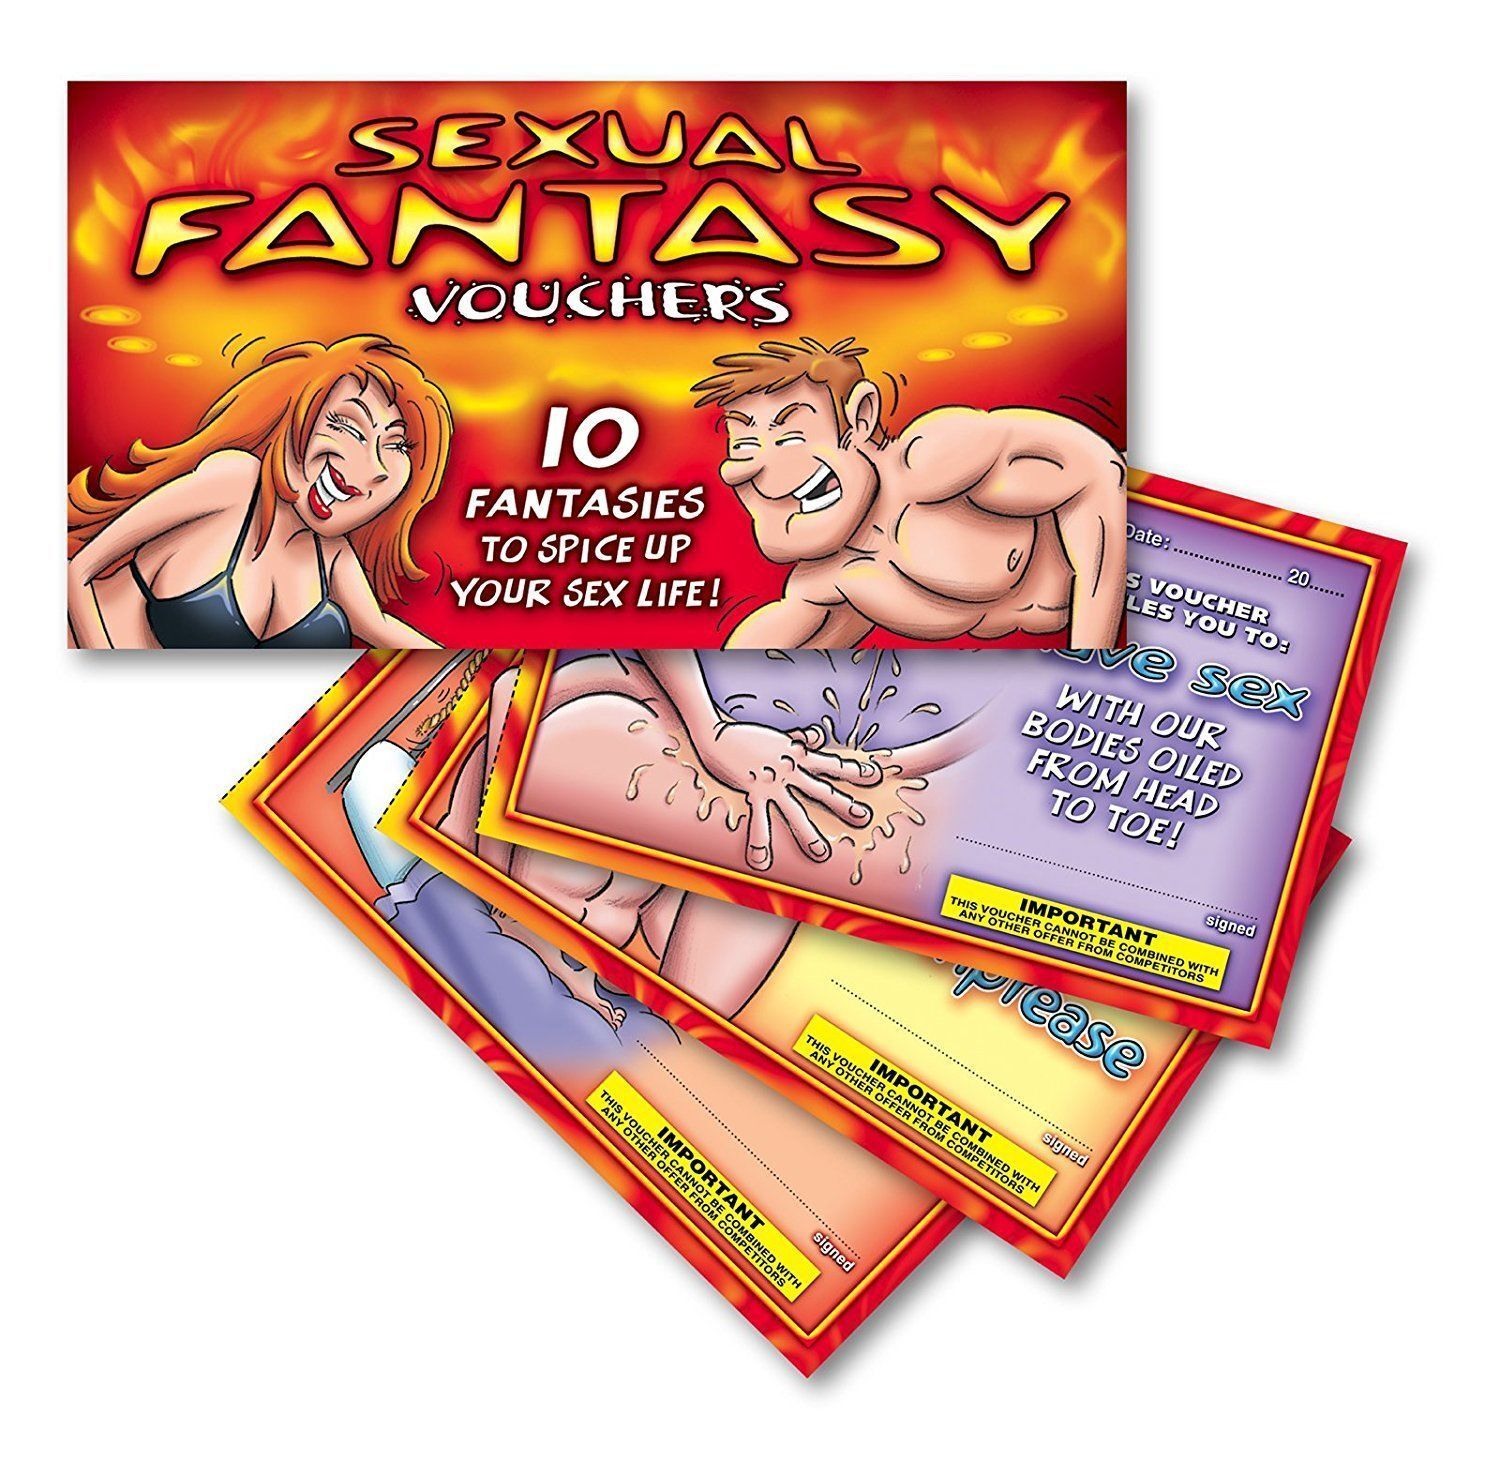 NEW Adult Novelty Booklet Vouchers Hot Naughty Bedroom Fun S